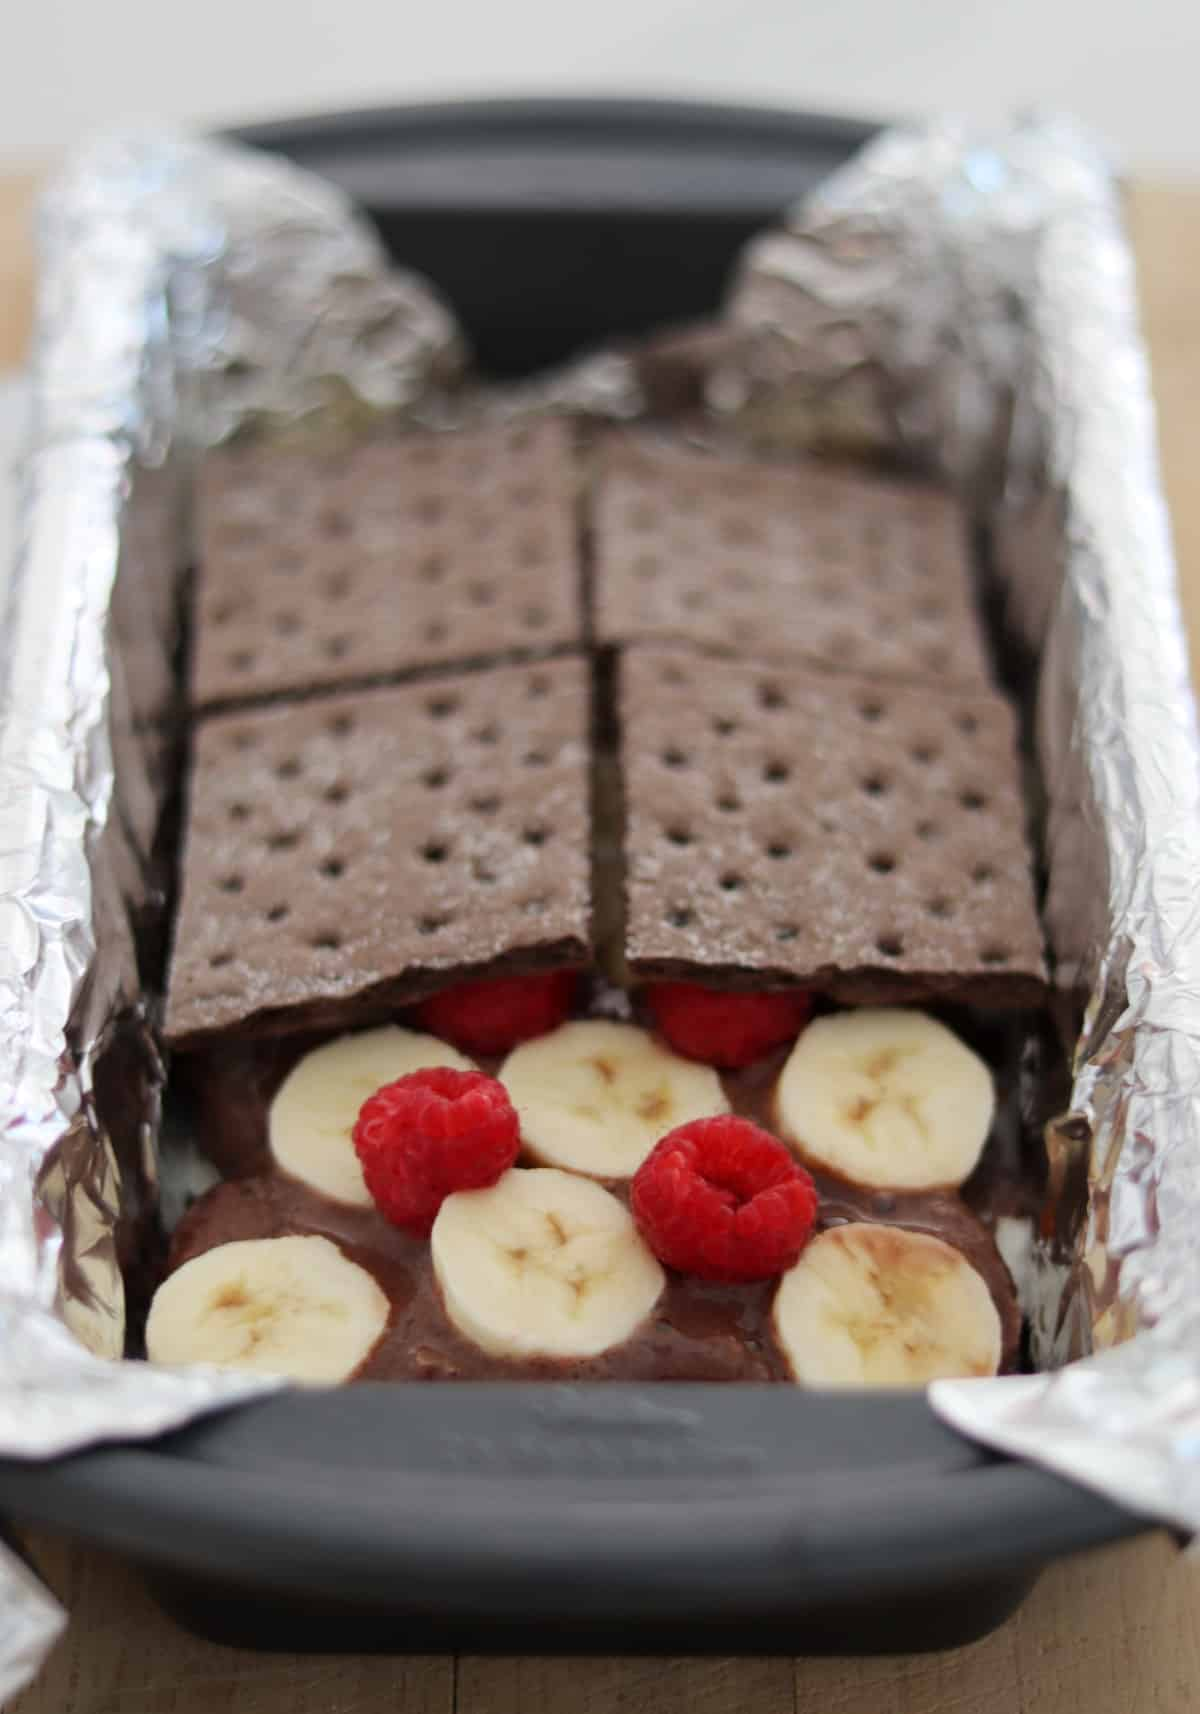 Loaf pan with layers of chocolate graham crackers, fudge ice cream bars, banana slices and raspberries.